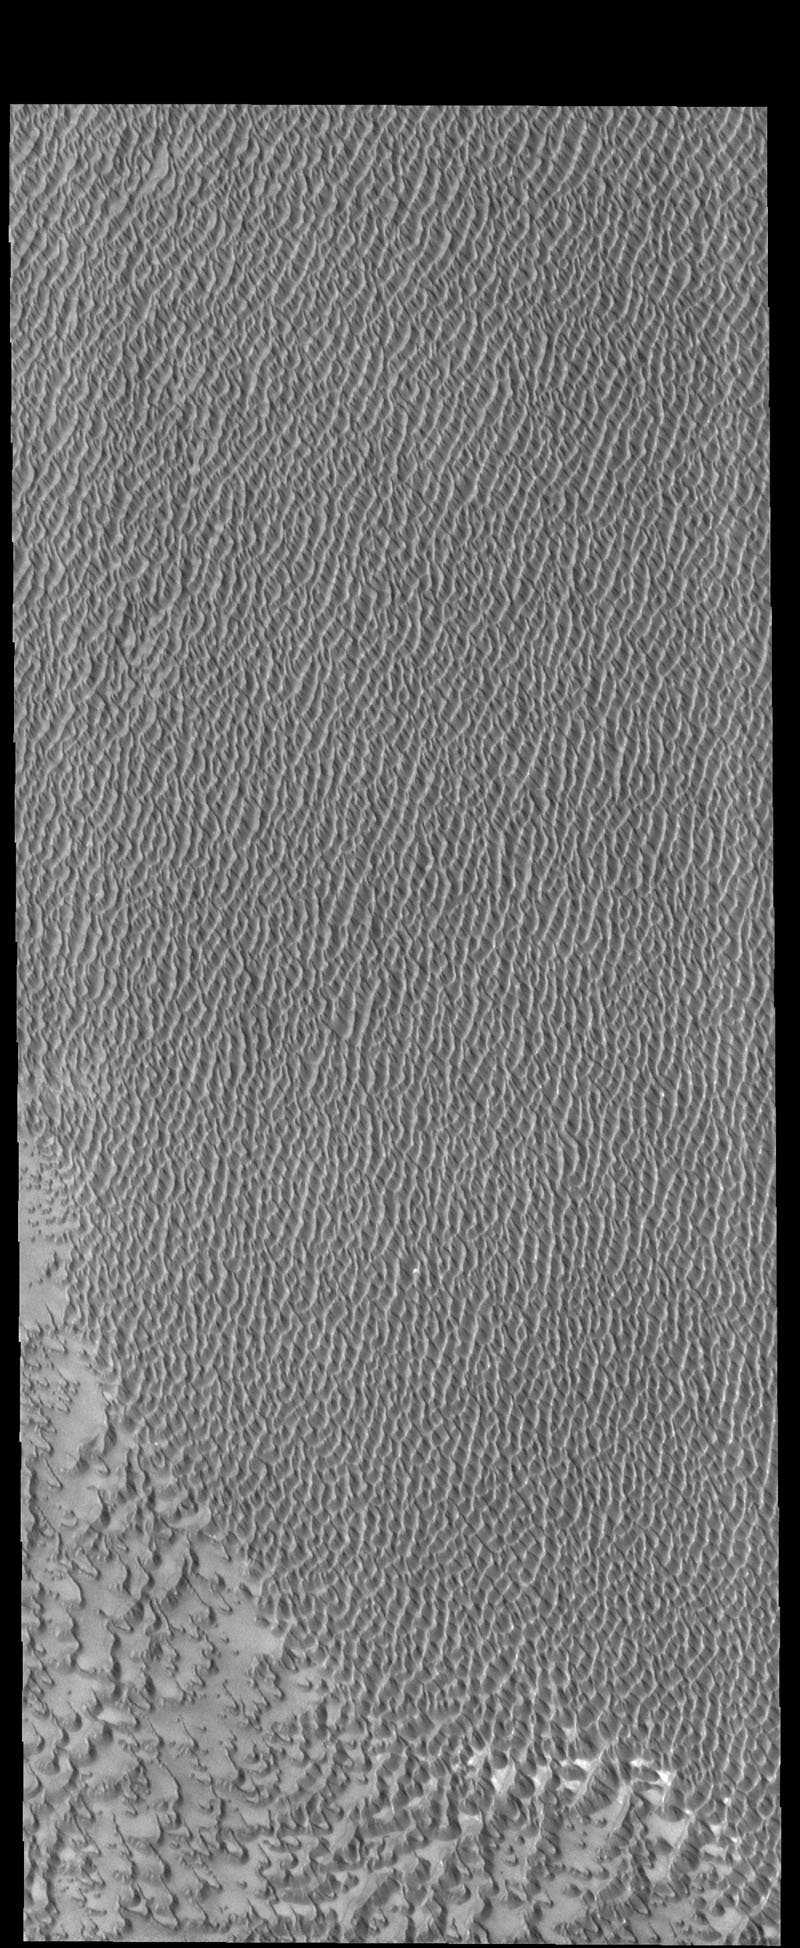 This image from NASA's 2001 Mars Odyssey spacecraft shows Siton Undae, a large dune field located in the northern plains near Escorial Crater on Mars. This image shows part of the center of the dune field.